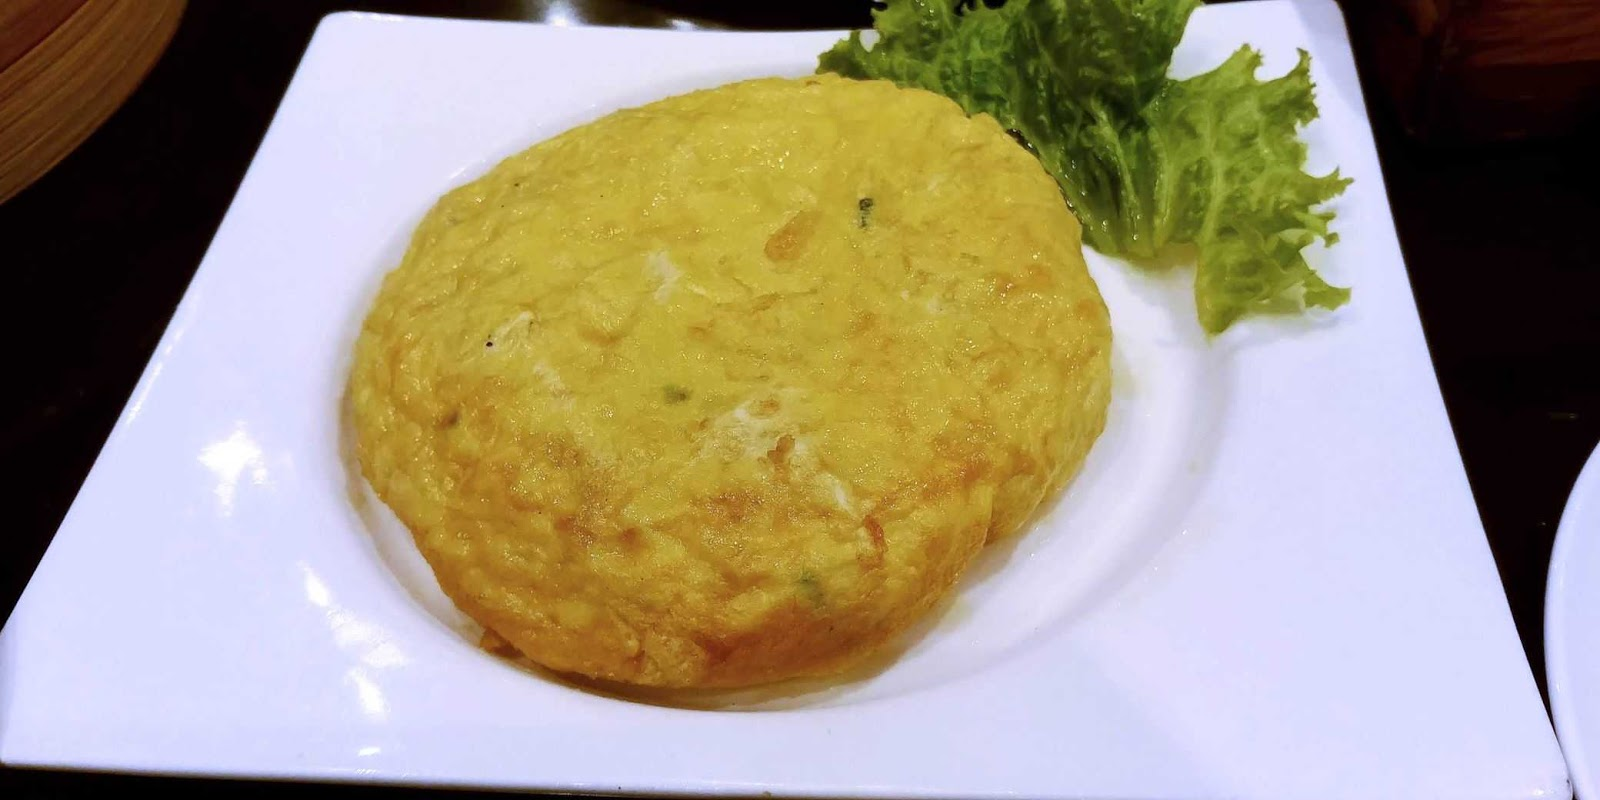 Lugang Cafe's Taiwanese Omelet with Preserved Turnip